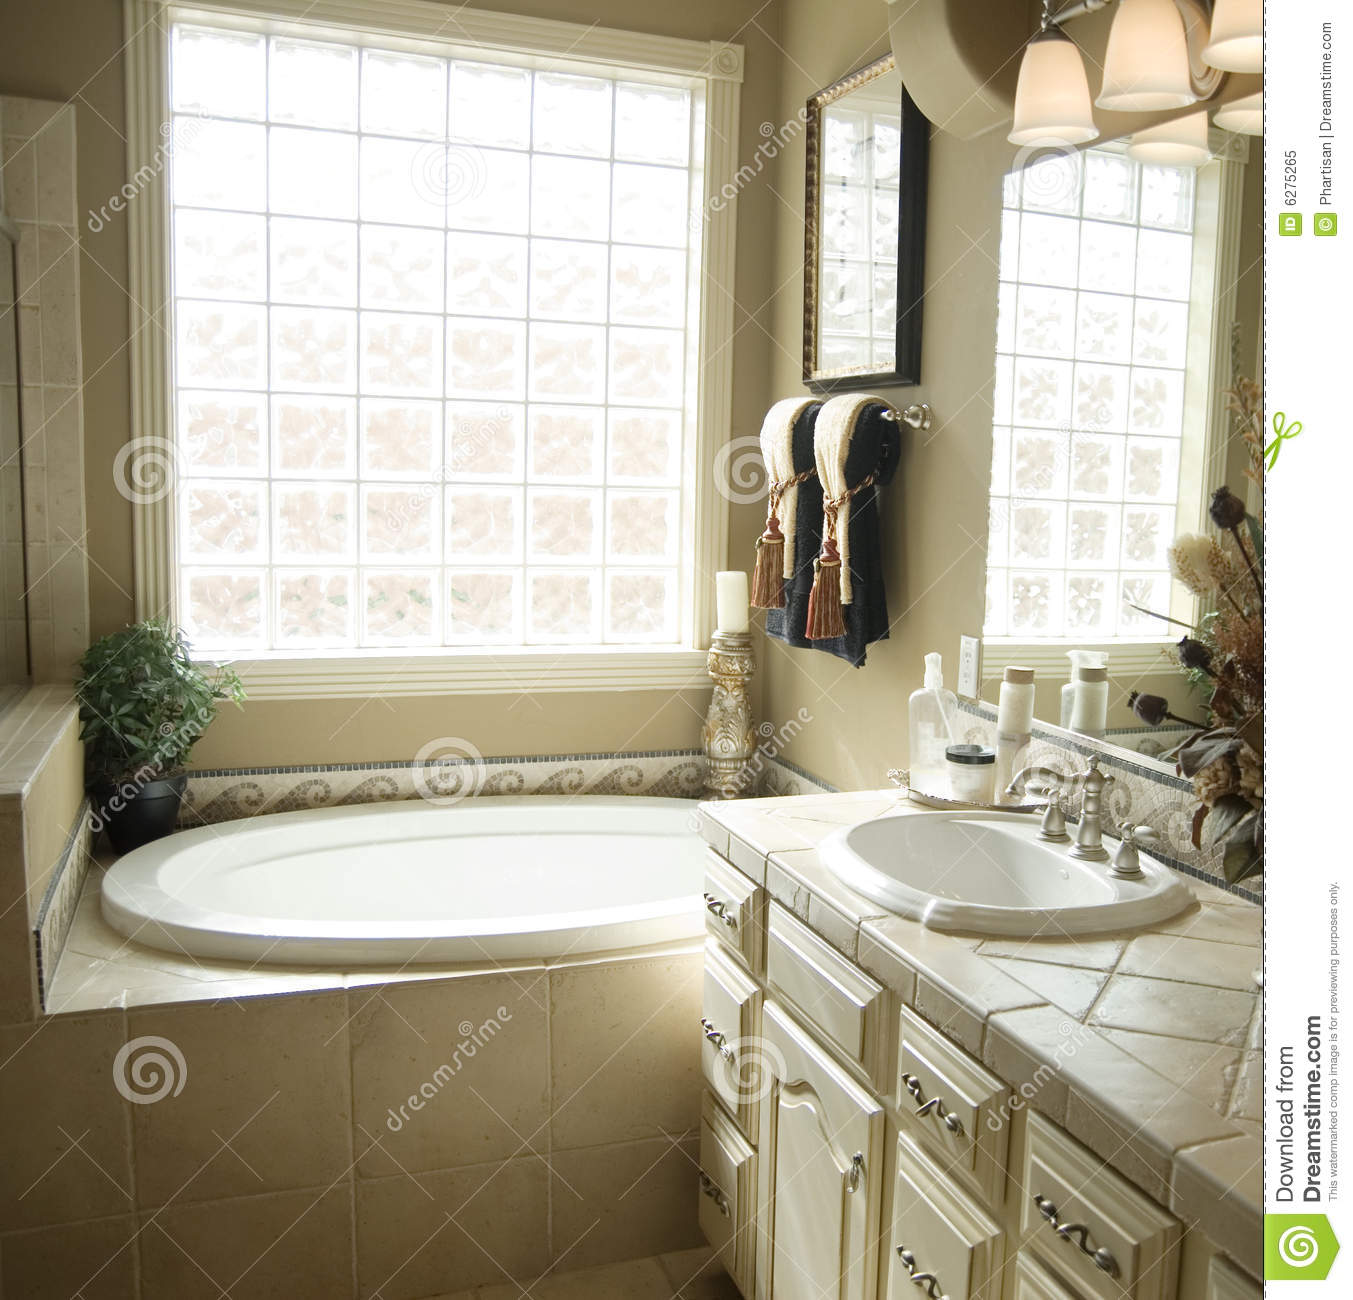 Beautiful bathroom interior design stock image image for Bathroom inside design